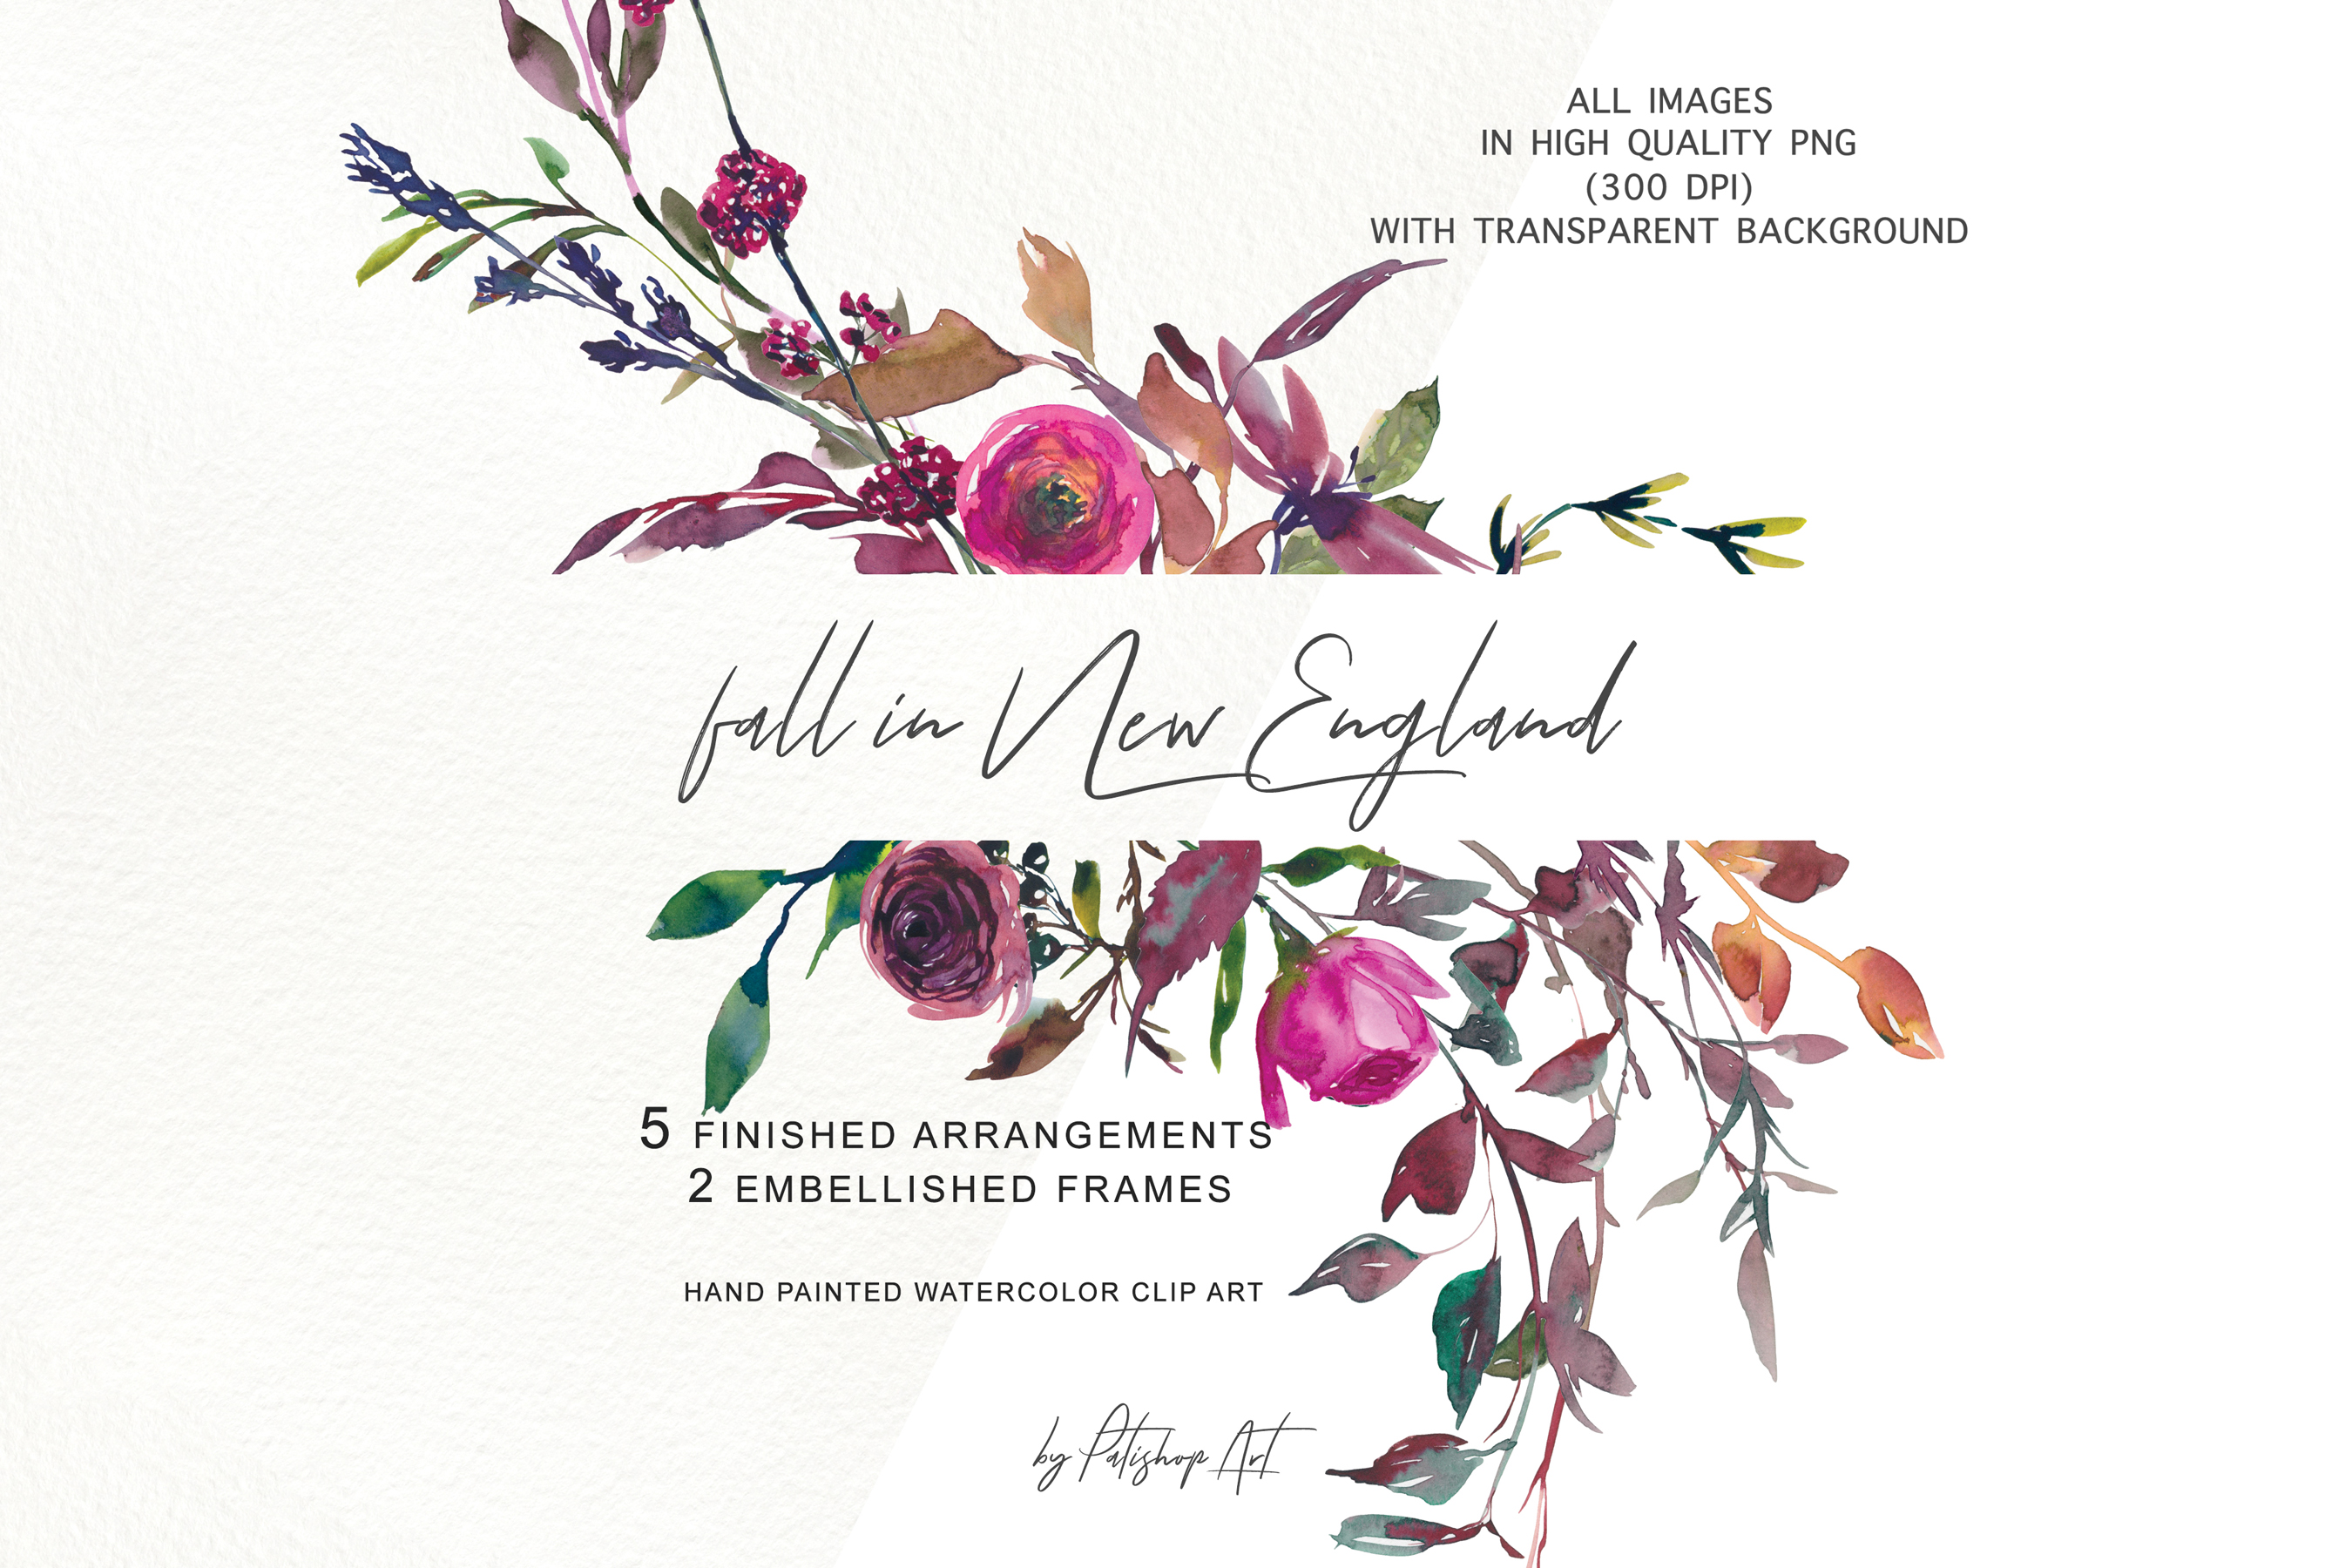 Watercolor Fall Twigs Herbs Flowers Arrangements Clipart example image 1